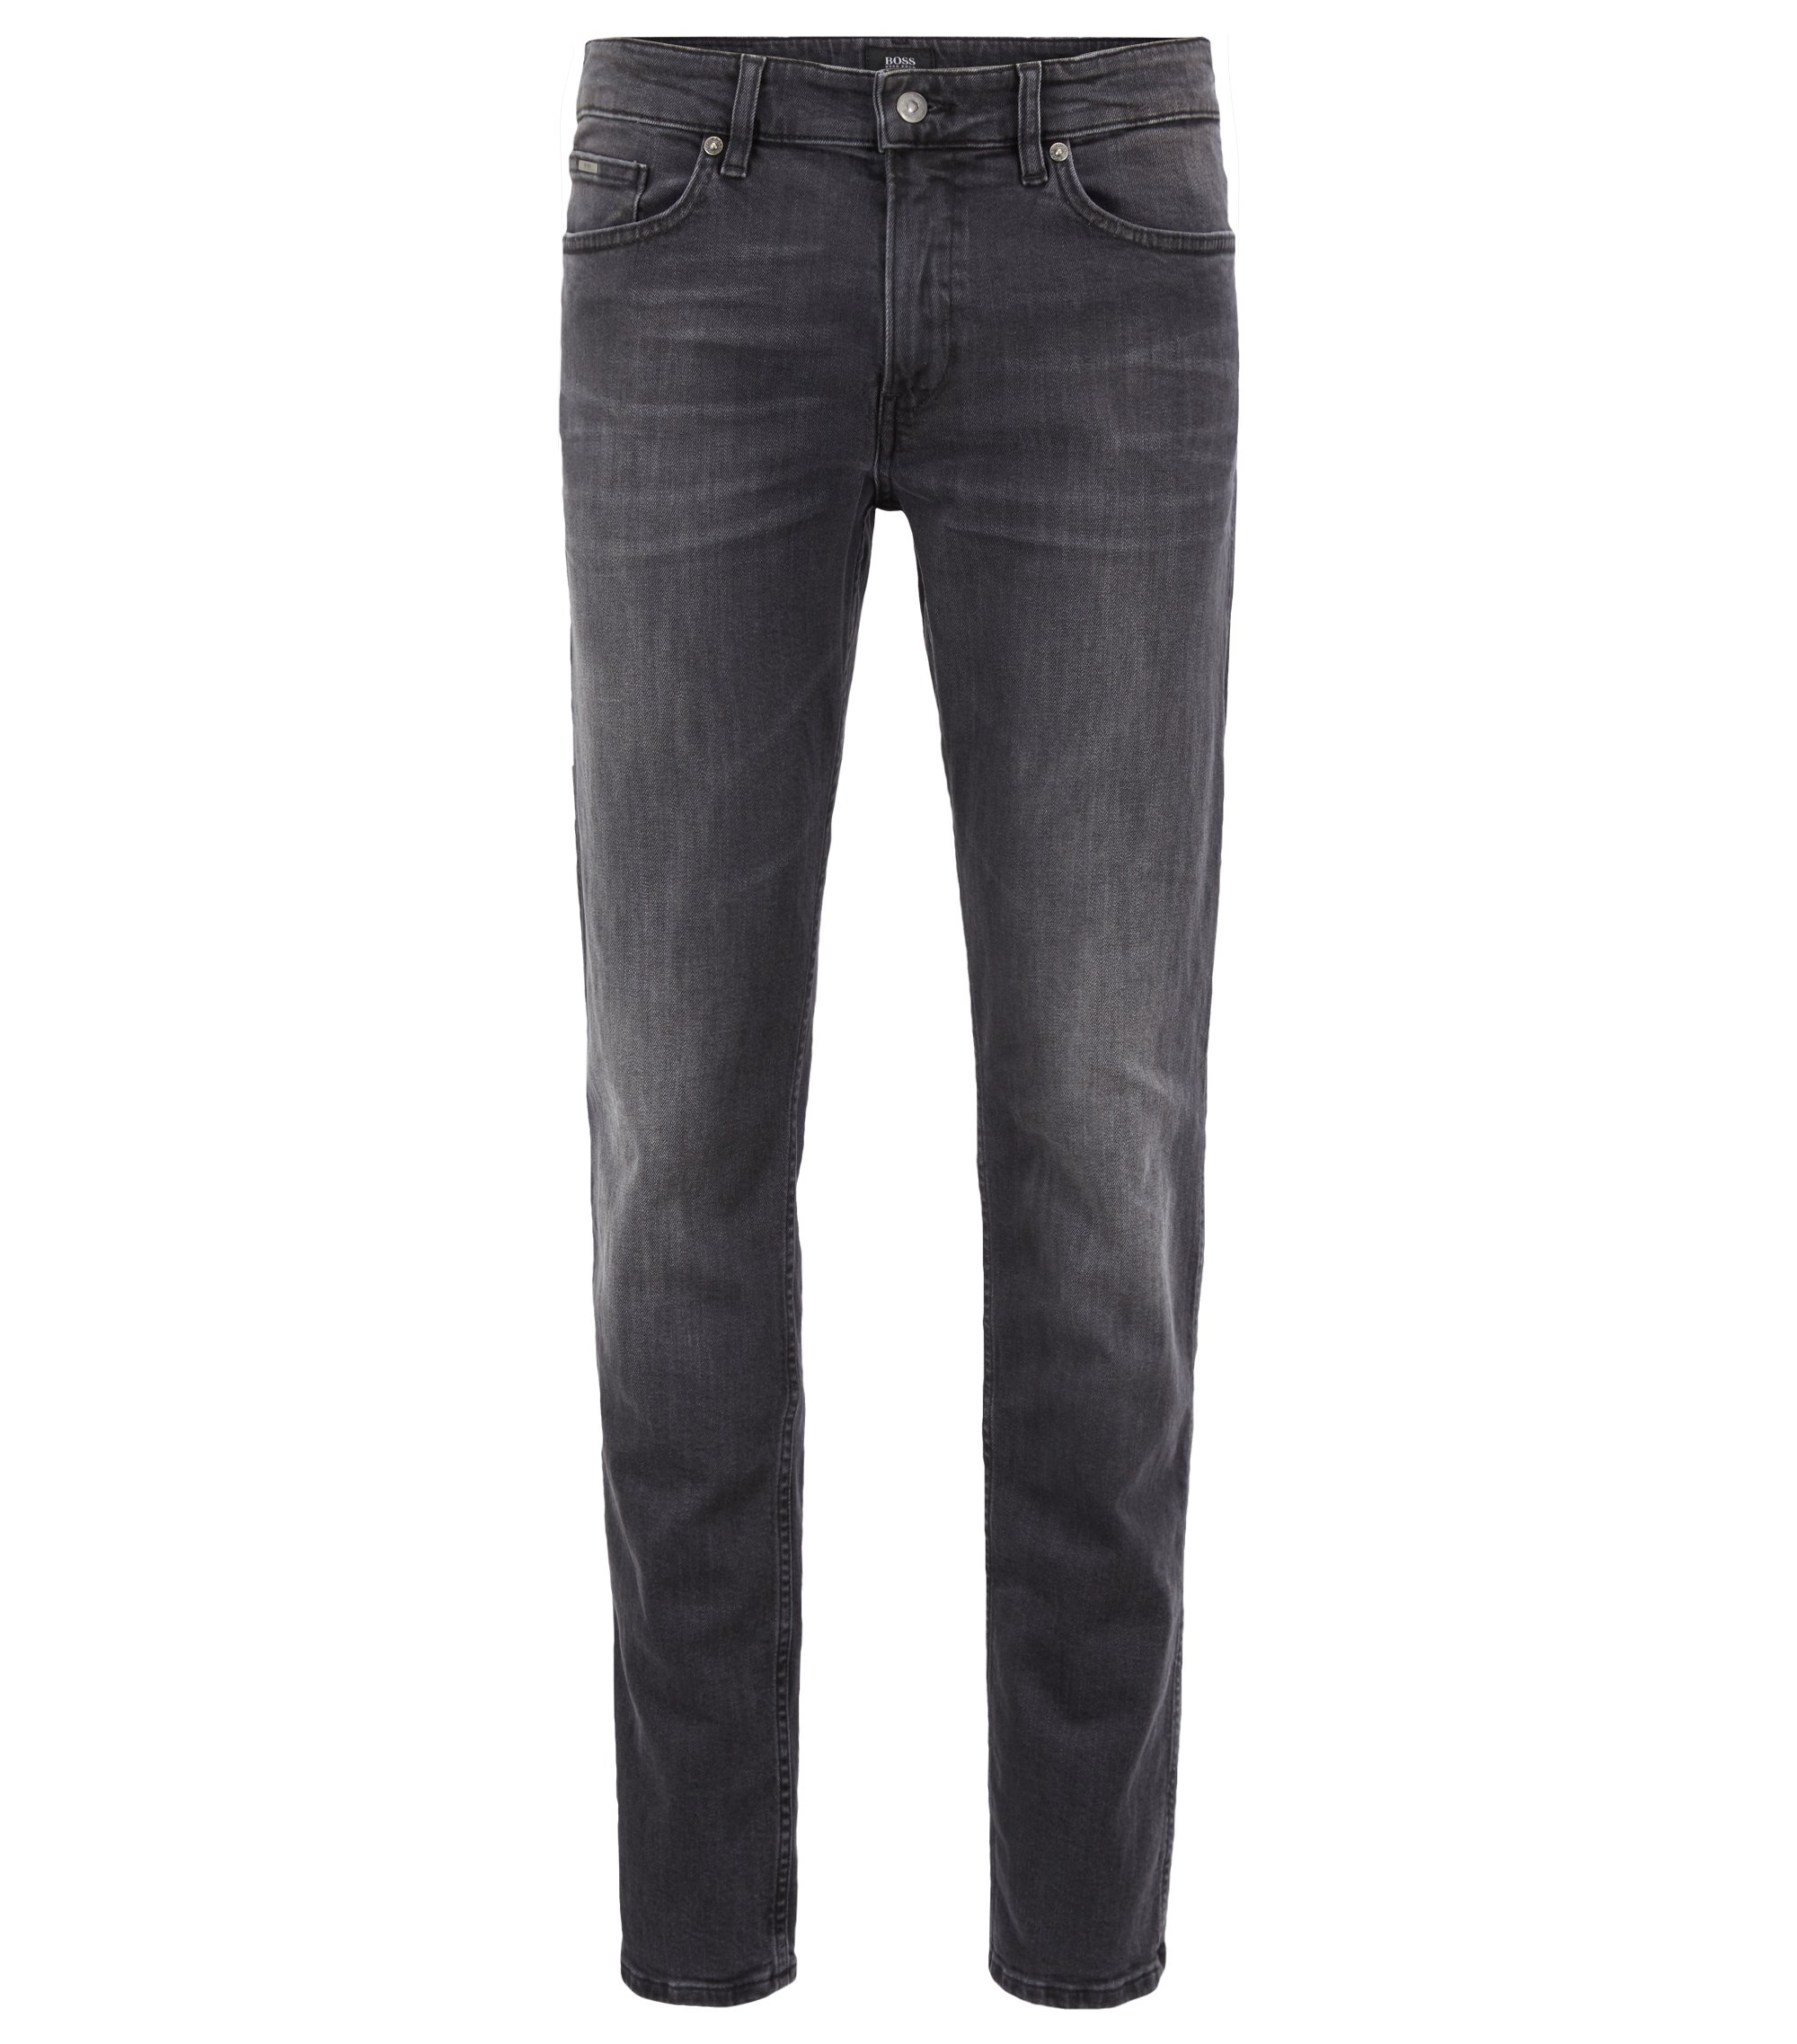 Slim-Fit Jeans aus Stretch-Denim, Dunkelgrau